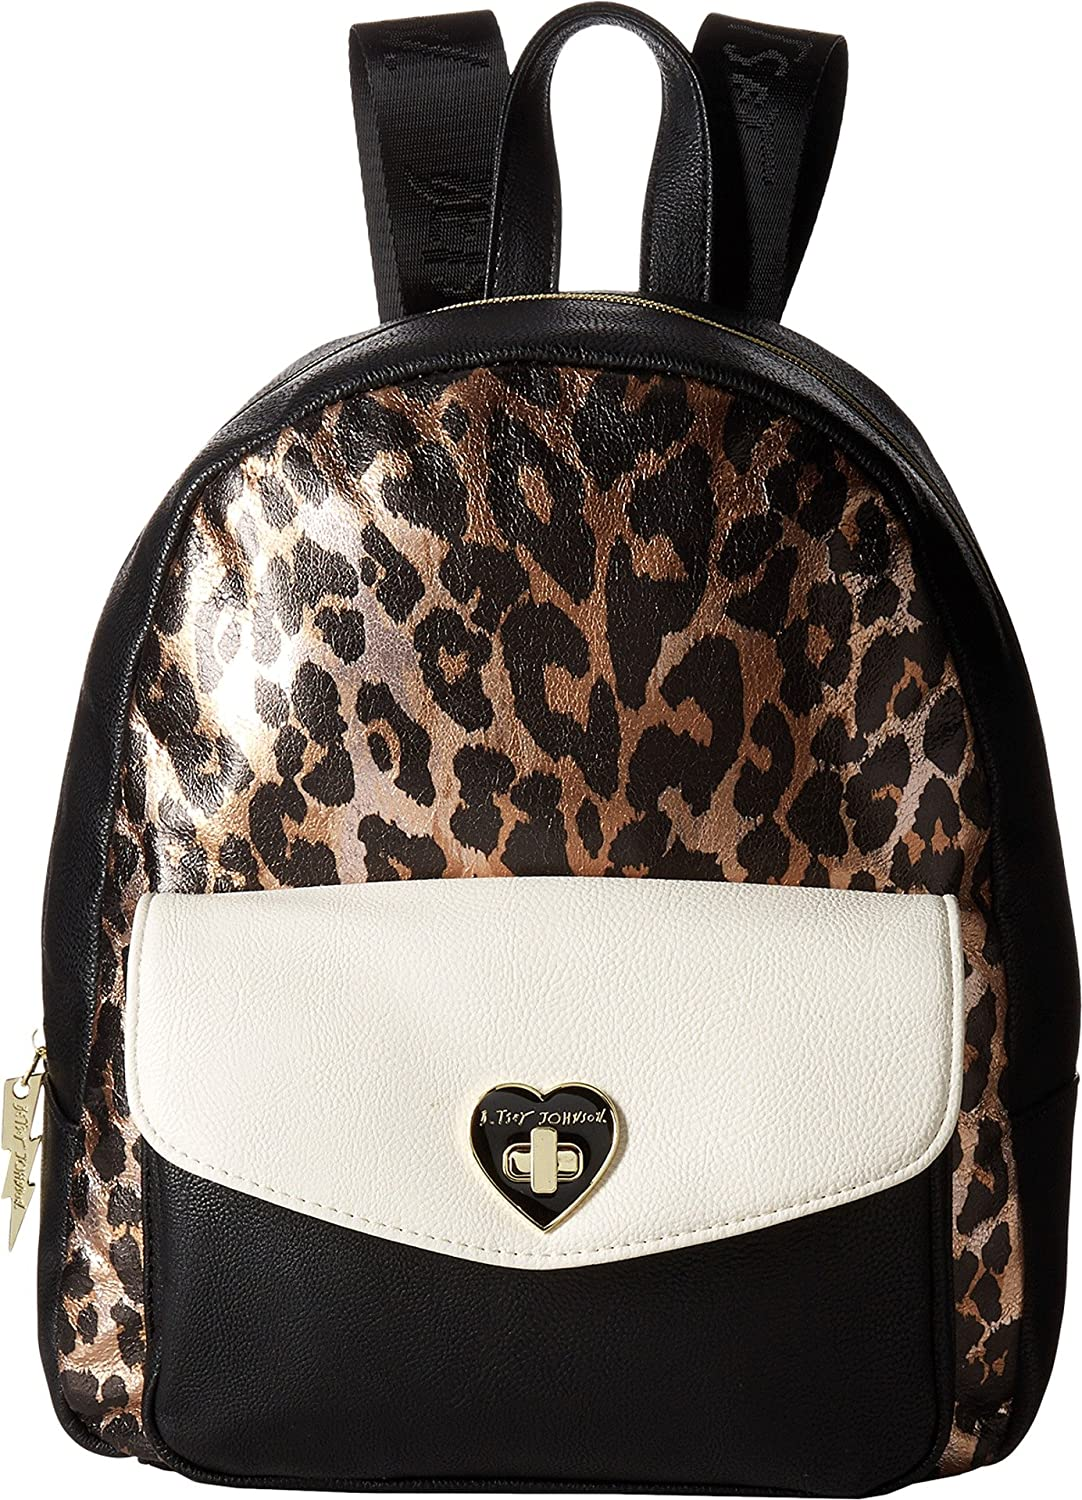 Betsey Johnson Turnlock Backpack Cheetah One Size